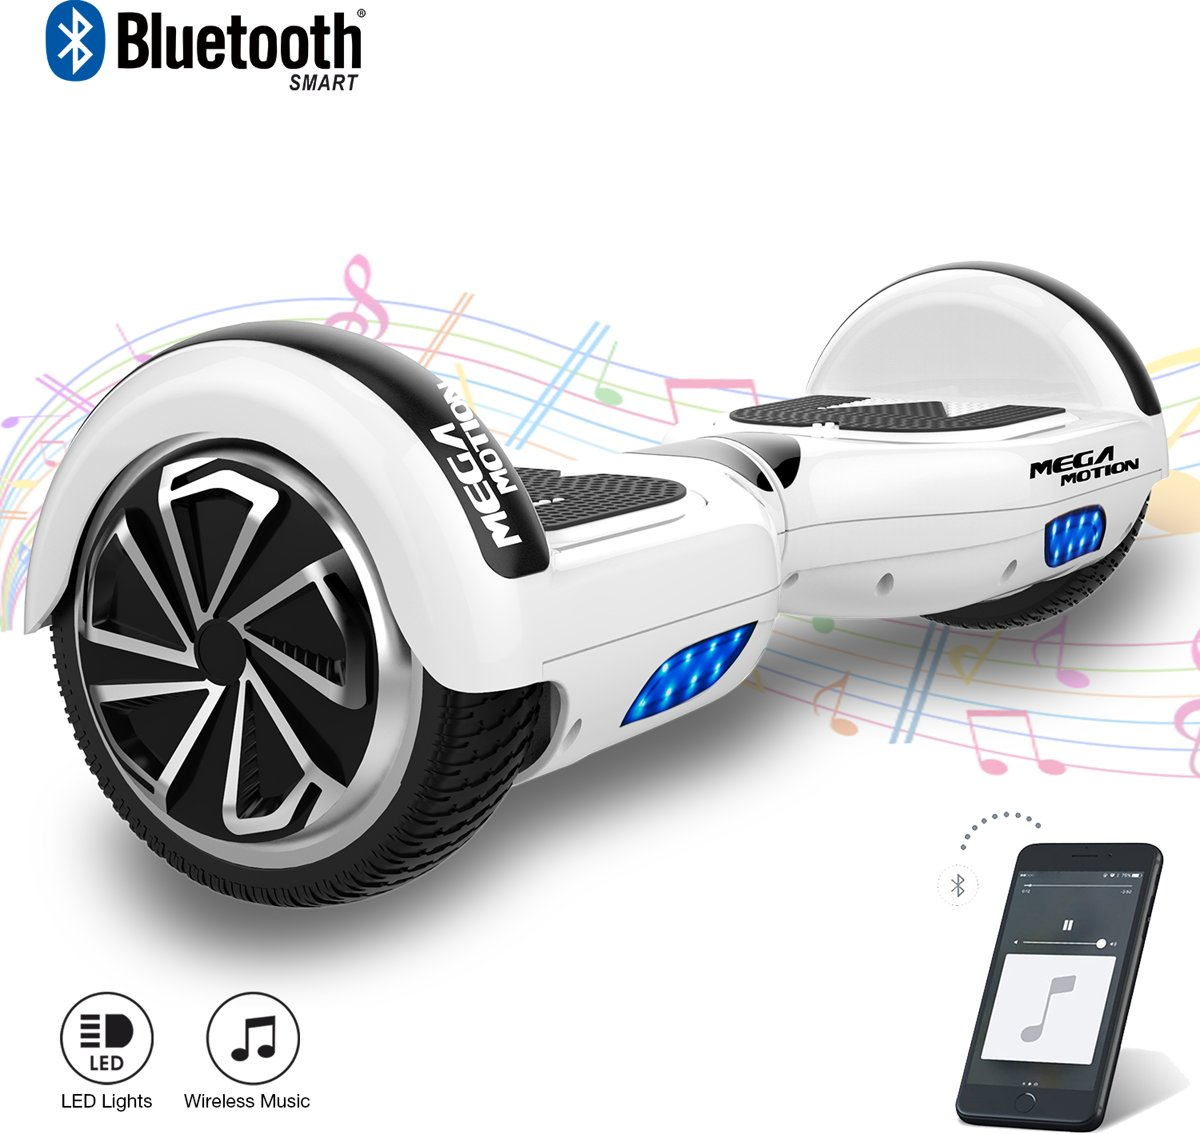 MEGA MOTION Self Balancing Smart Hoverboard Balance Scooter 6.5 inch/ V.5 Bluetooth speakers/ LED Verlichting /speciaal ontwerp - Wit